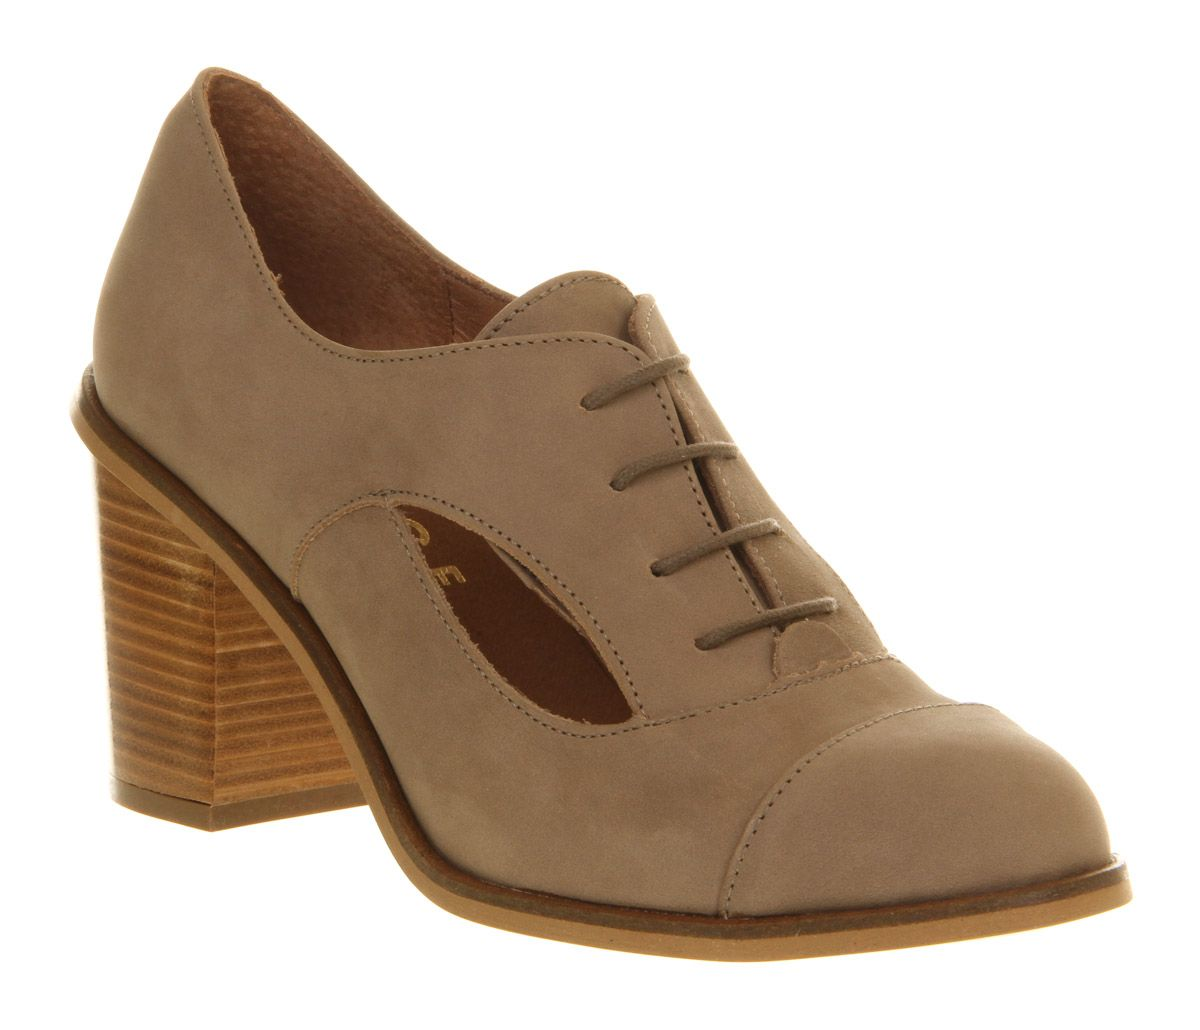 Lottie block heel brogue shoes